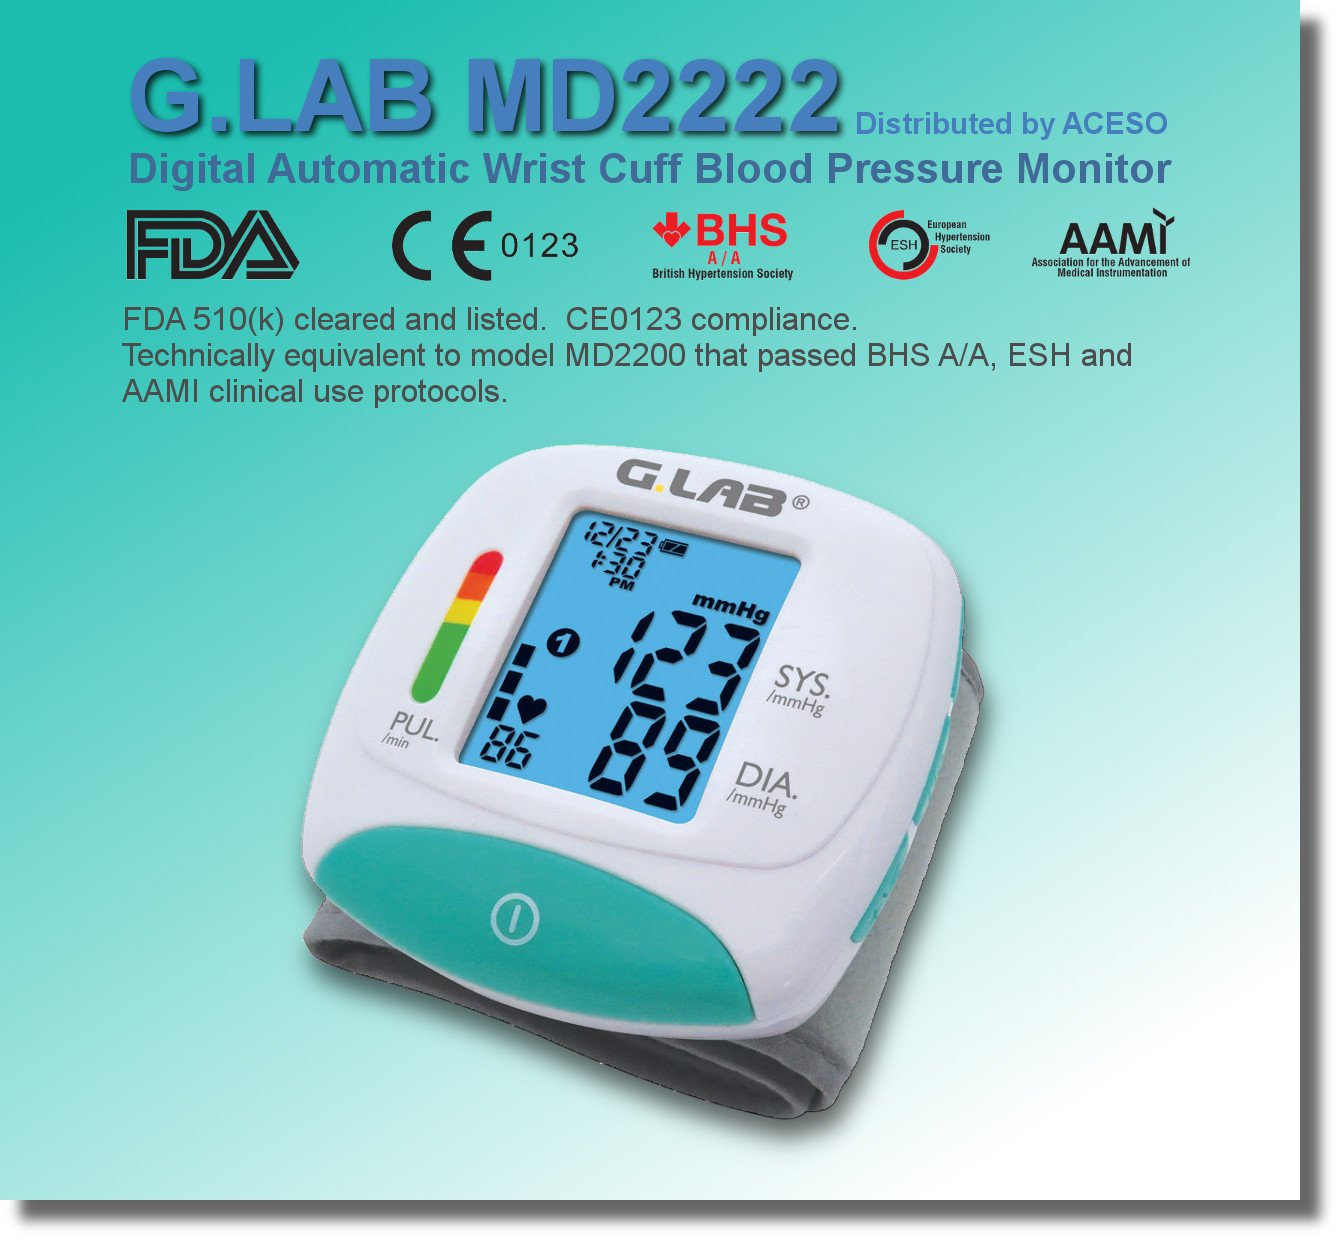 Amazon.com : G.LAB G.lab Digital Automatic md2222 Wrist Cuff Blood Pressure Monitor, 2.3 Ounce : Beauty